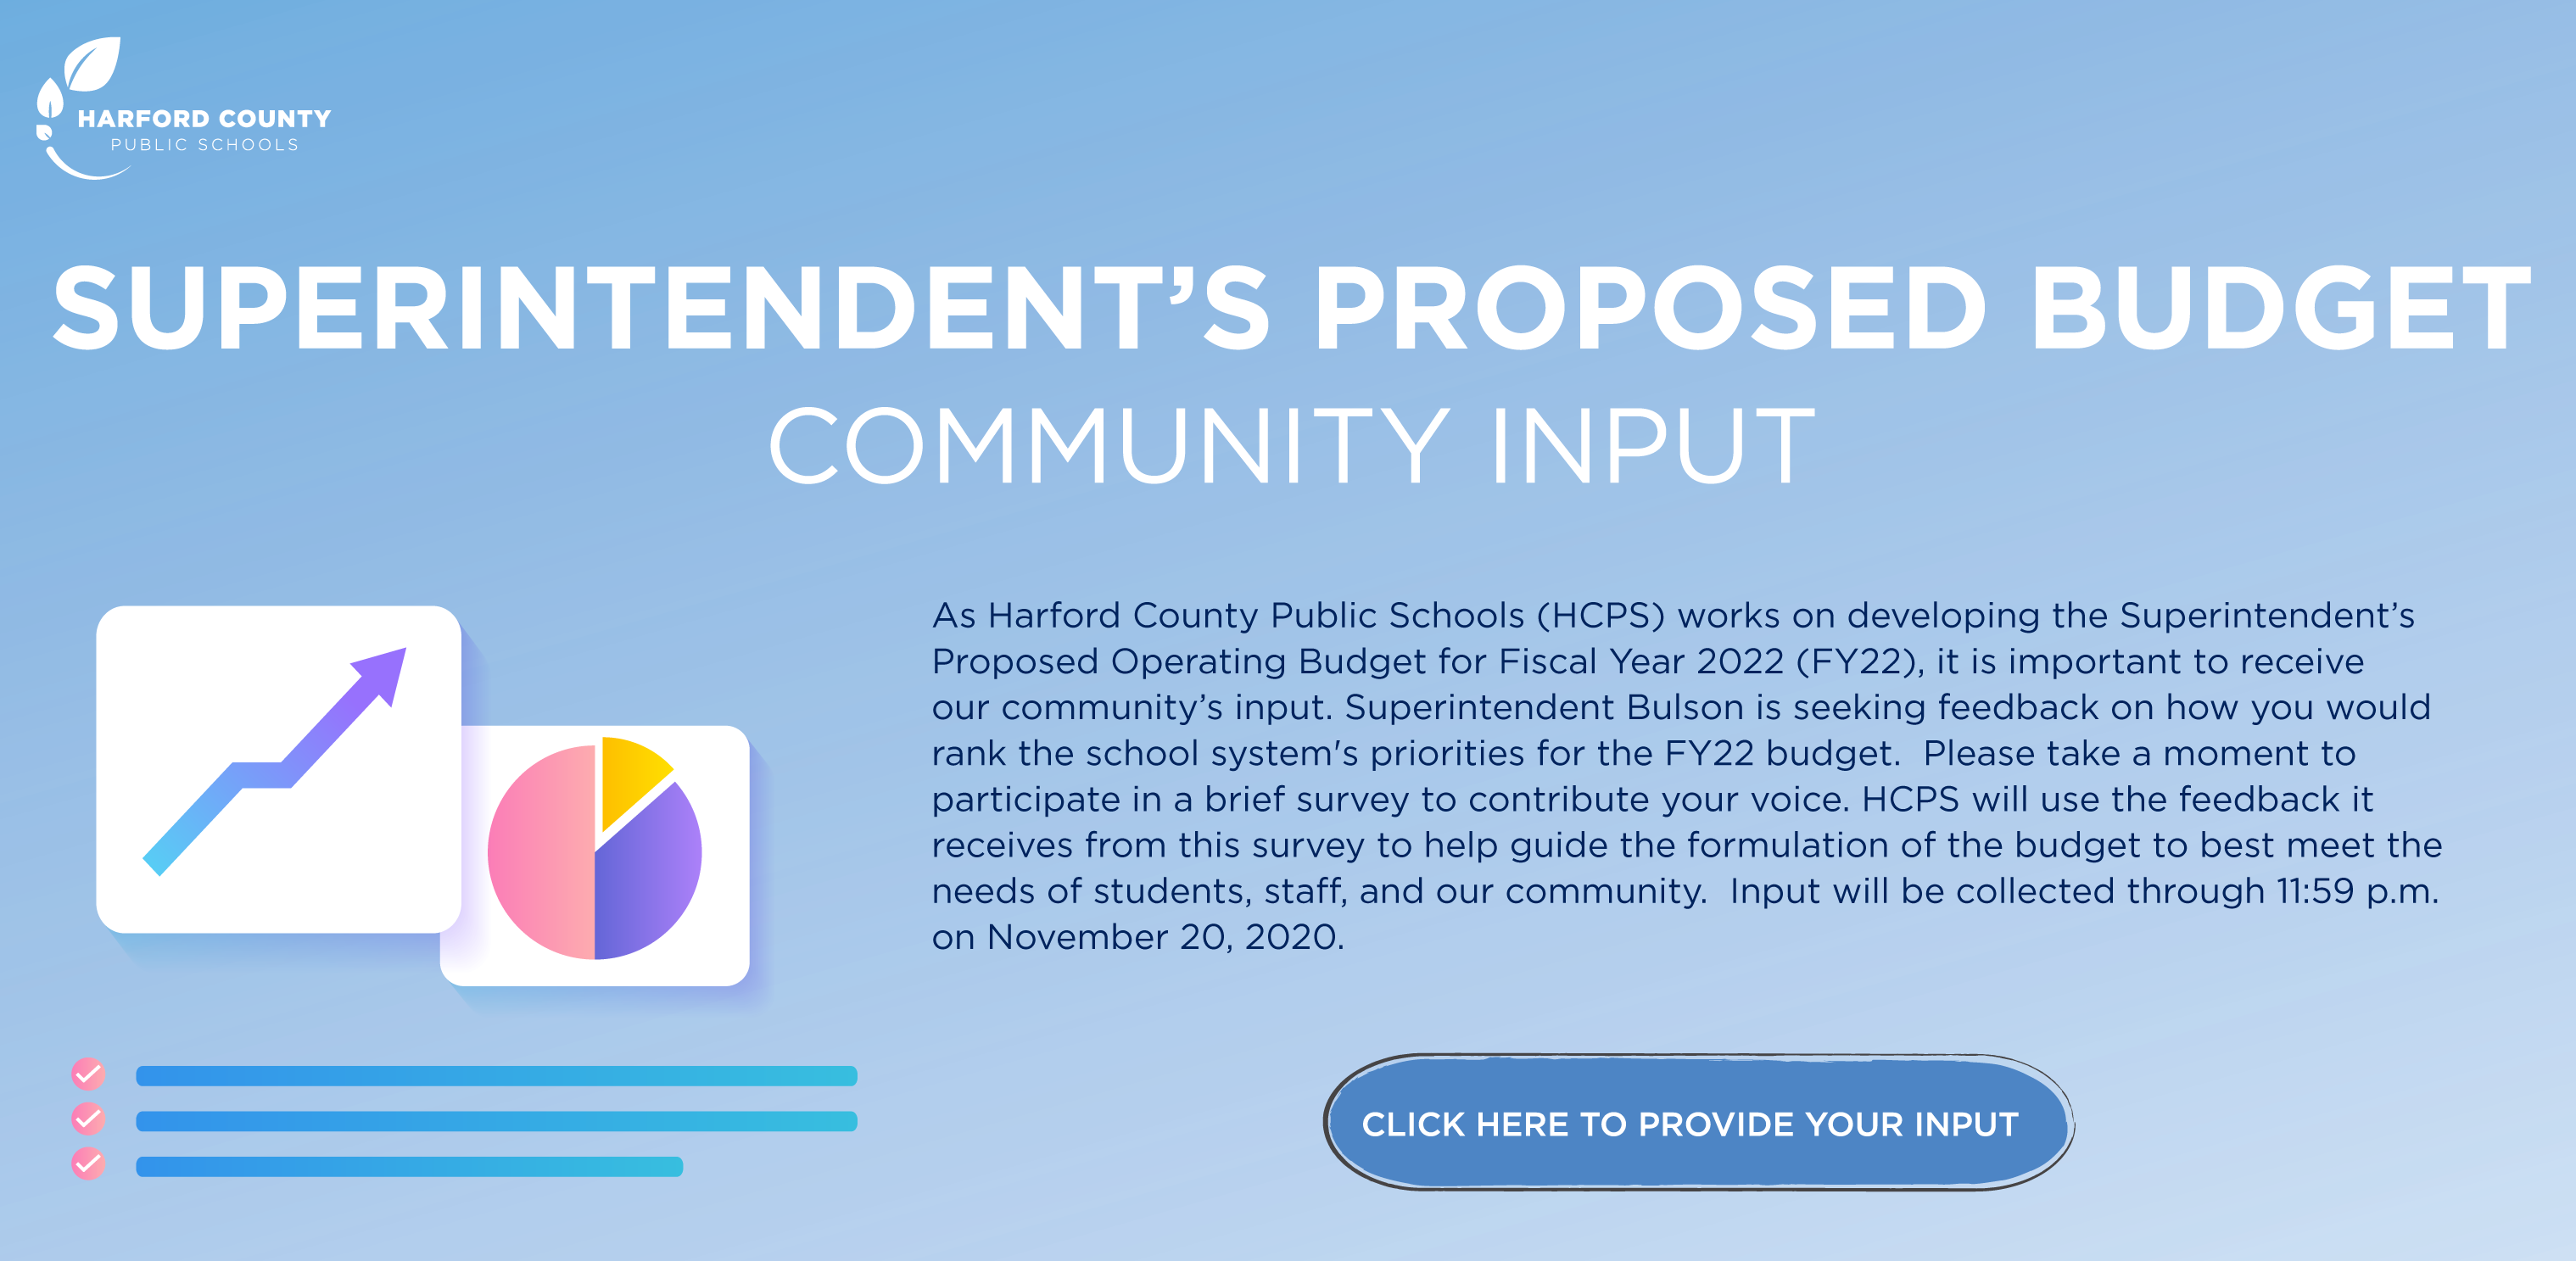 Superintendent's Proposed Budget Community Input.  As Harford County Public Schools (HCPS) works on developing the Superintendent's Proposed Operating Budget for Fiscal Year 2022 (FY22), it is important to receive our community's input.  Superintendent Bulson is seeking feedback on how you would rank the school system's priorities for the FY22 budget.  Please take a moment to participate in a brief survey to contribute your voice.  HCPS will use the feedback it receives from this survey to help guide the formulation of the budget to best meet the needs of students, staff, and our community.  Input will be collected through 11:59 p.m. on November 20. 2020.  Click here to provide your input.